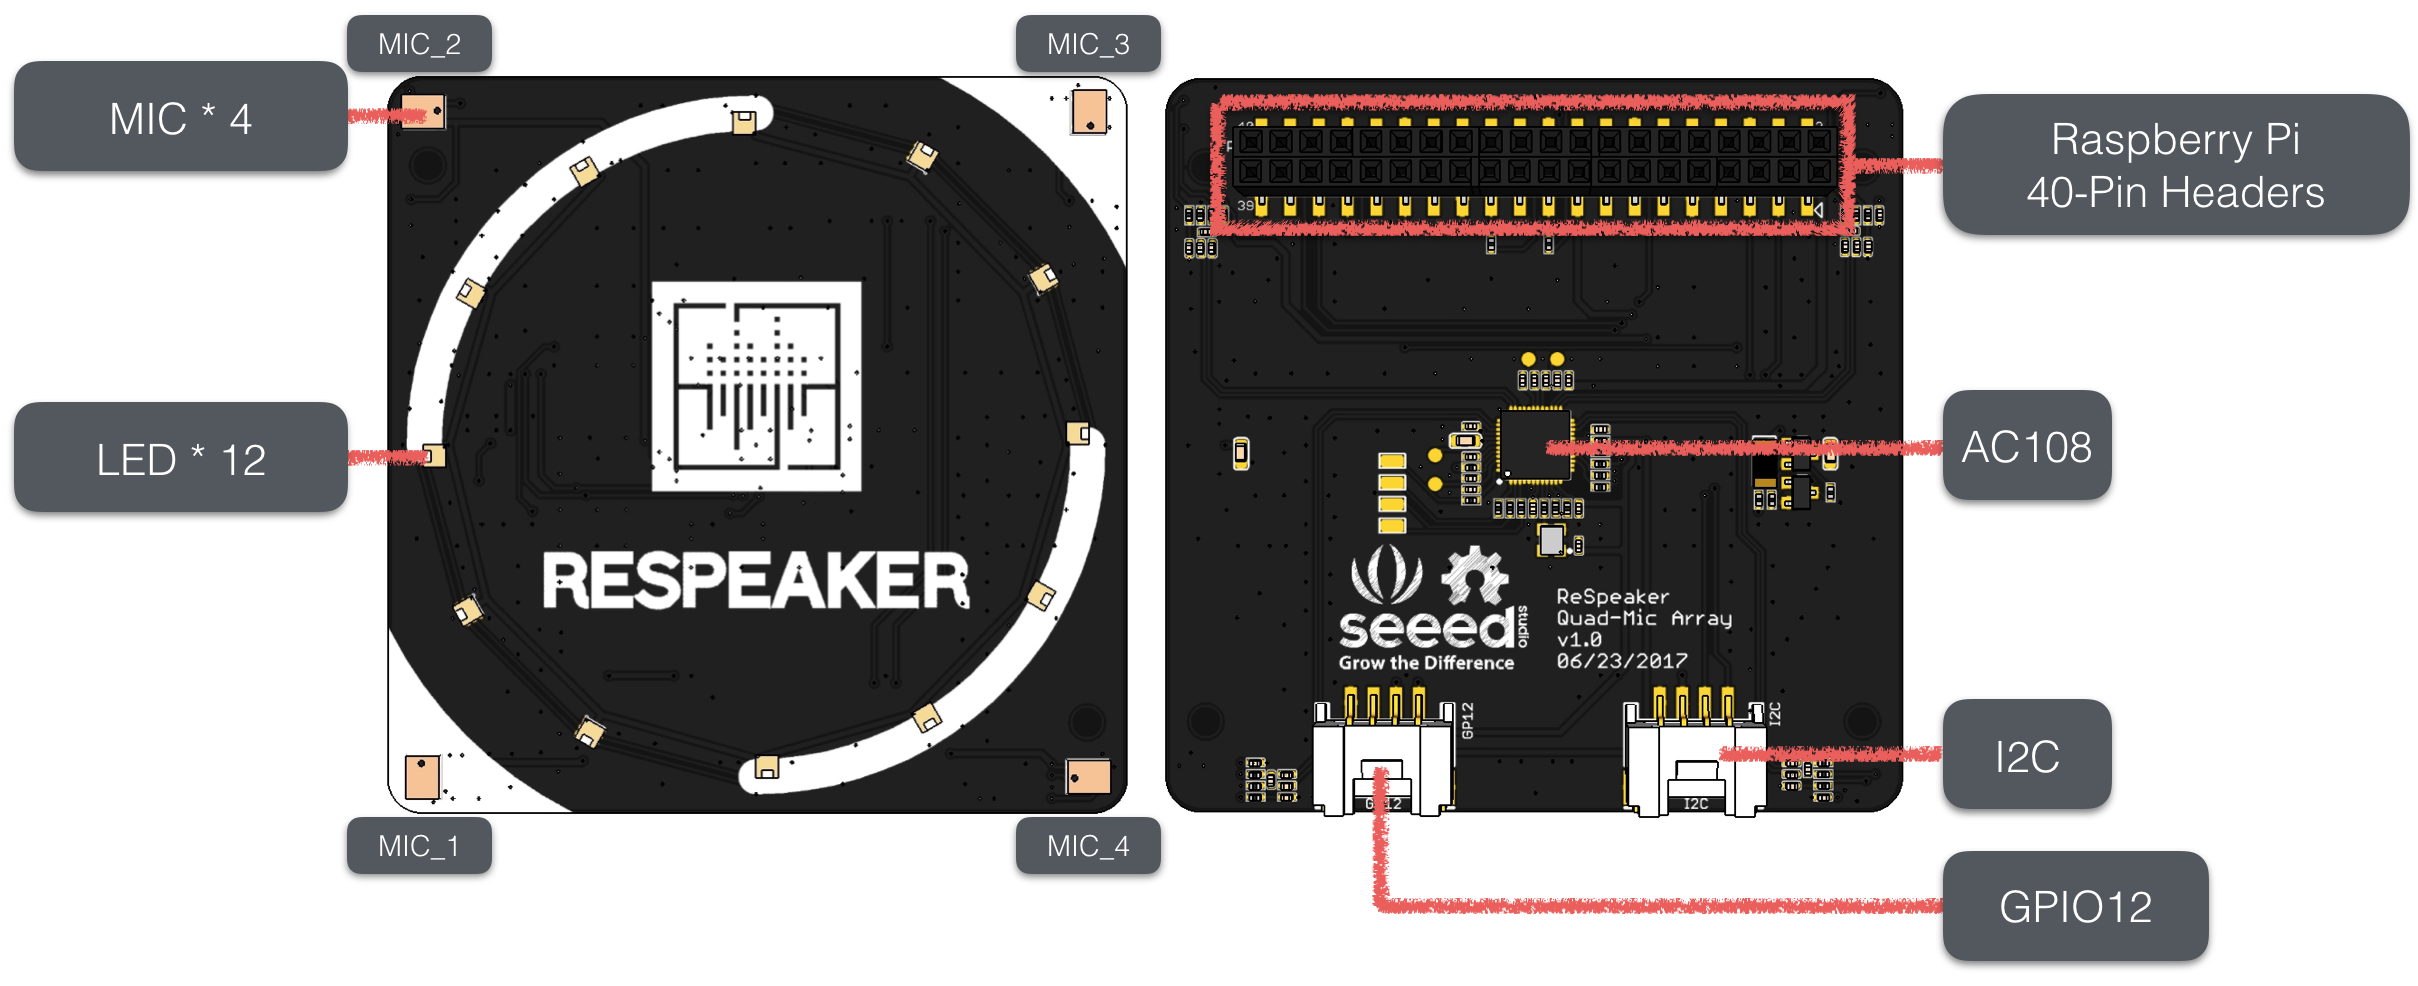 https://github.com/SeeedDocument/ReSpeaker-4-Mic-Array-for-Raspberry-Pi/blob/master/img/features.png?raw=true